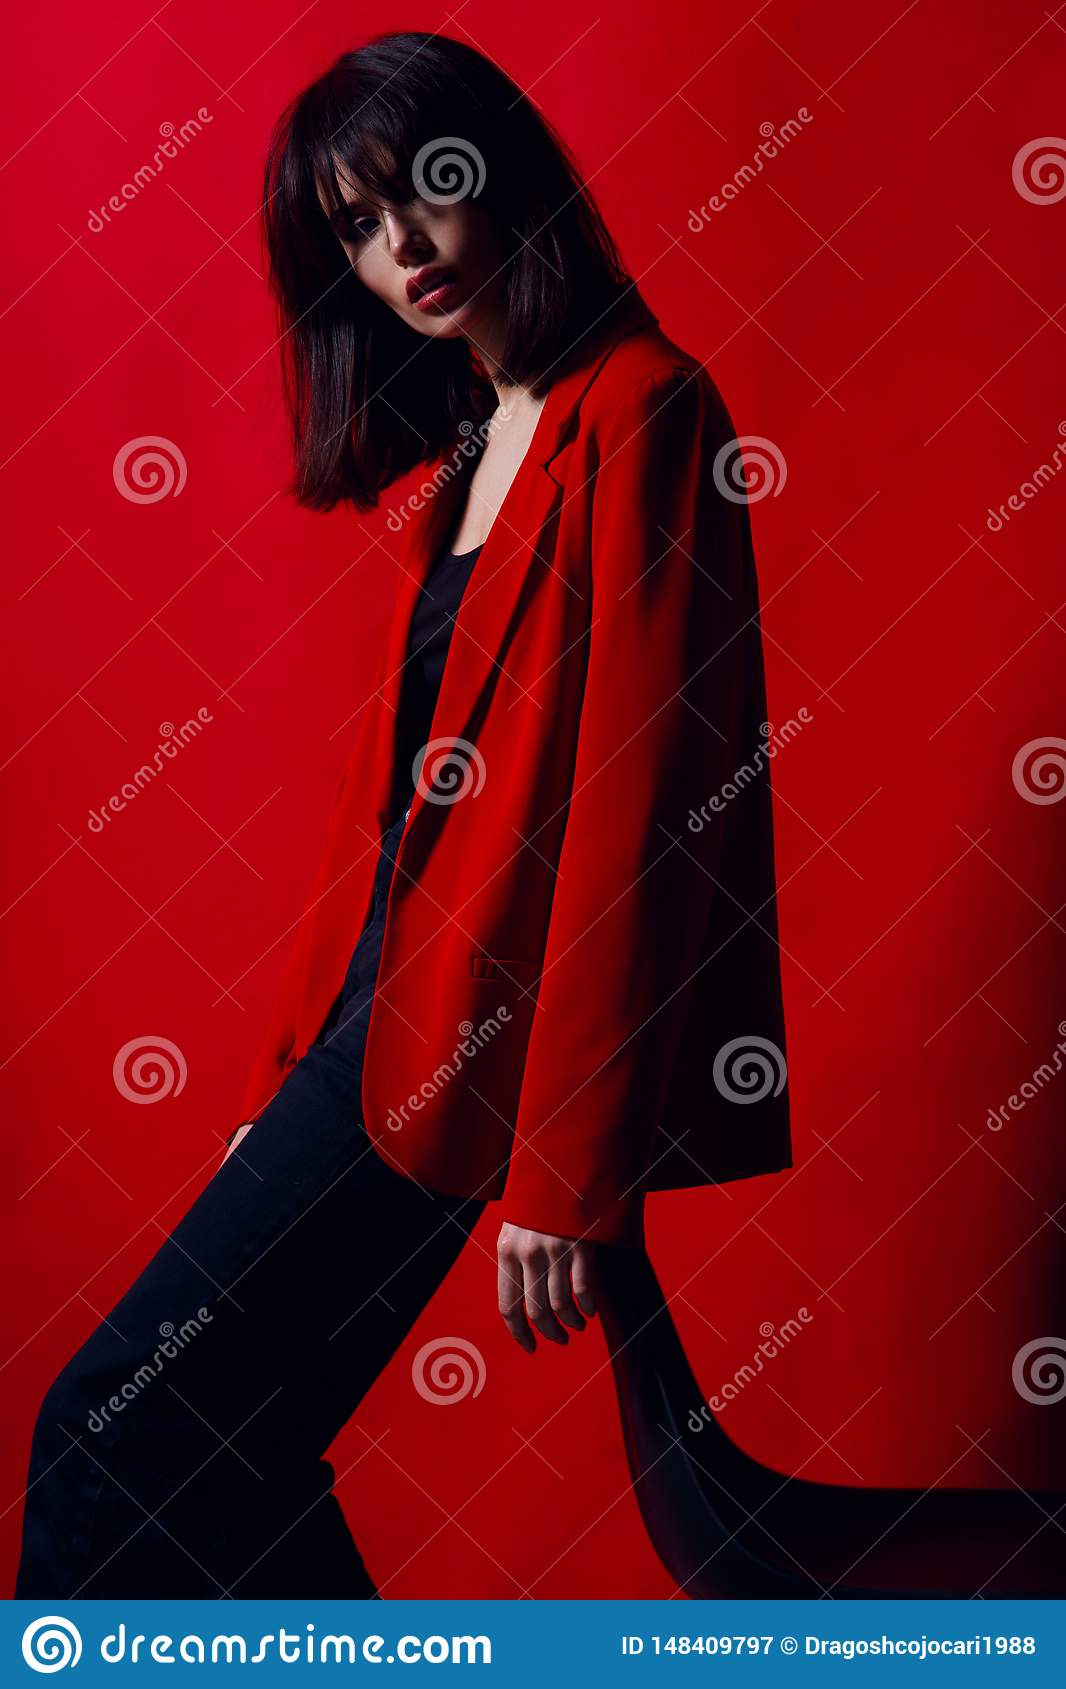 Portrait of a young woman in profile, posing in studio standing on chair in red suit, on a red background.